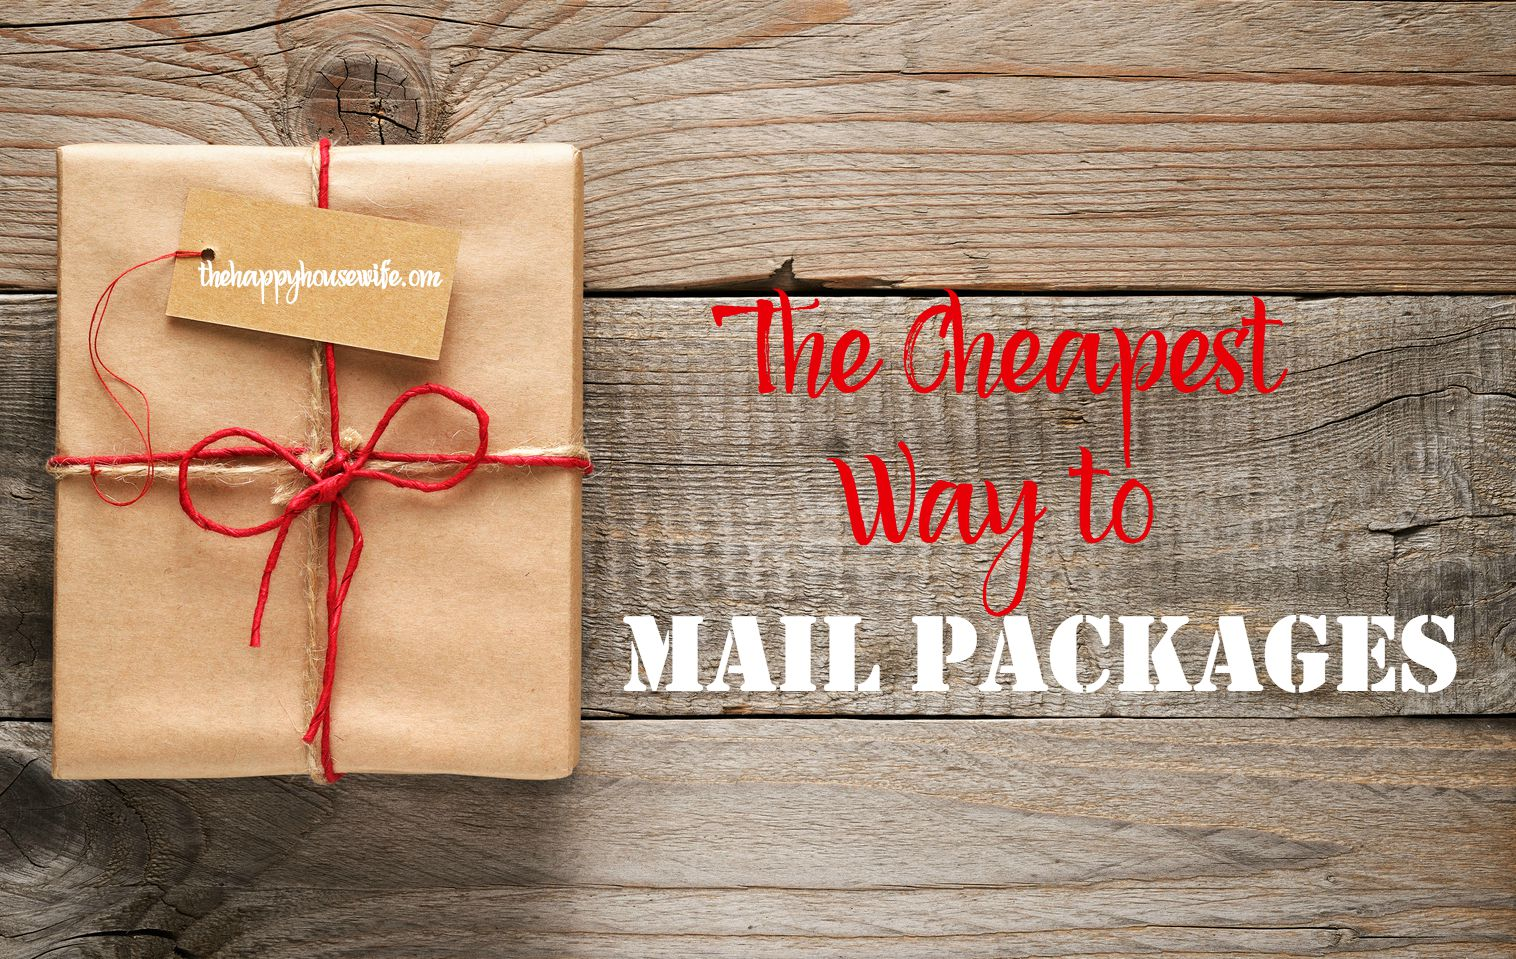 cheapest shipping options for all types of packages including fedex ups and the